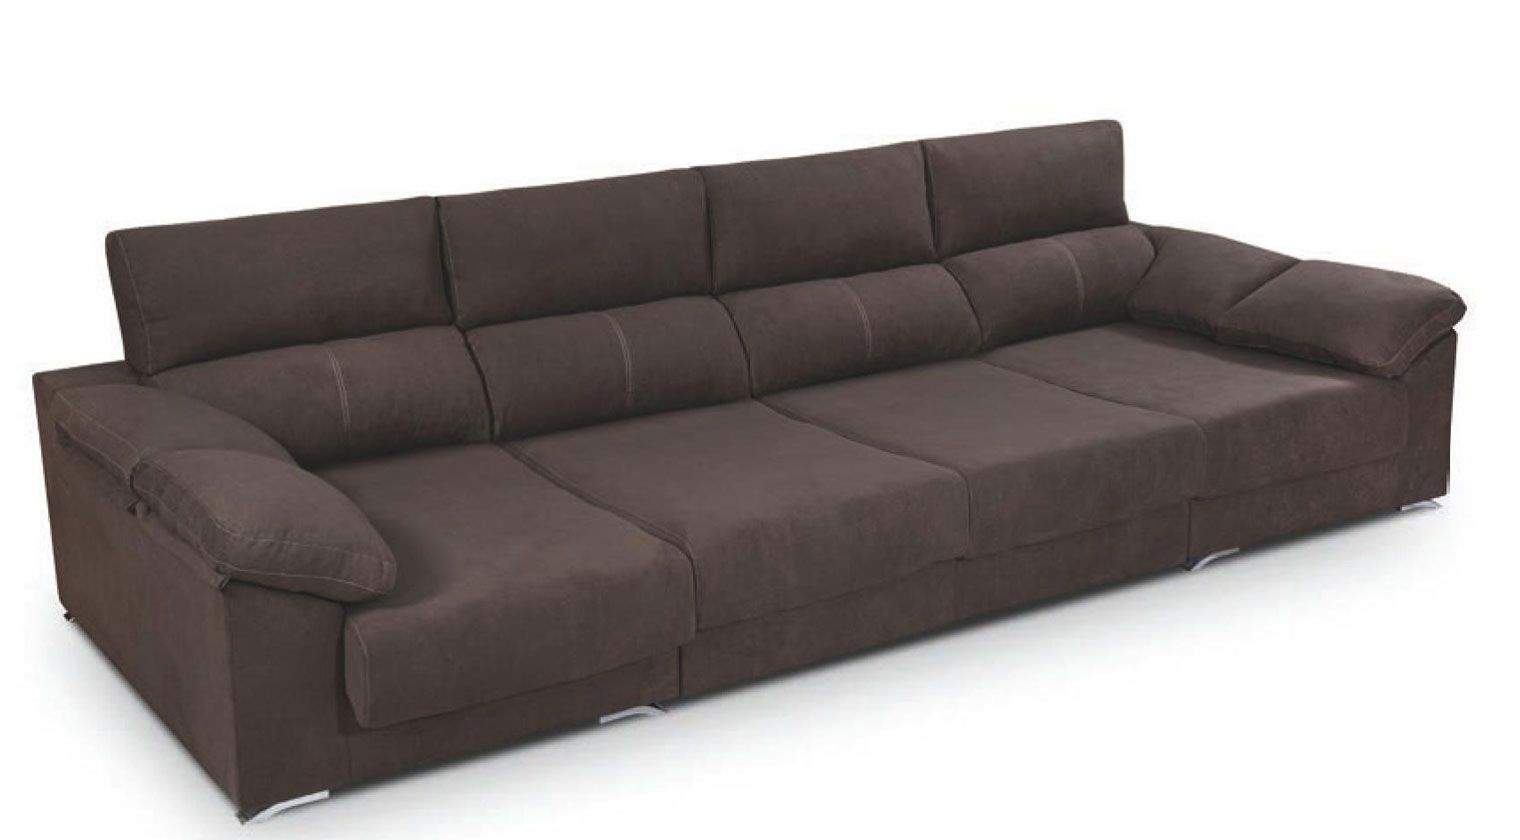 Chaise longue tela lleida chaise longue tela for Sofa cama 4 plazas